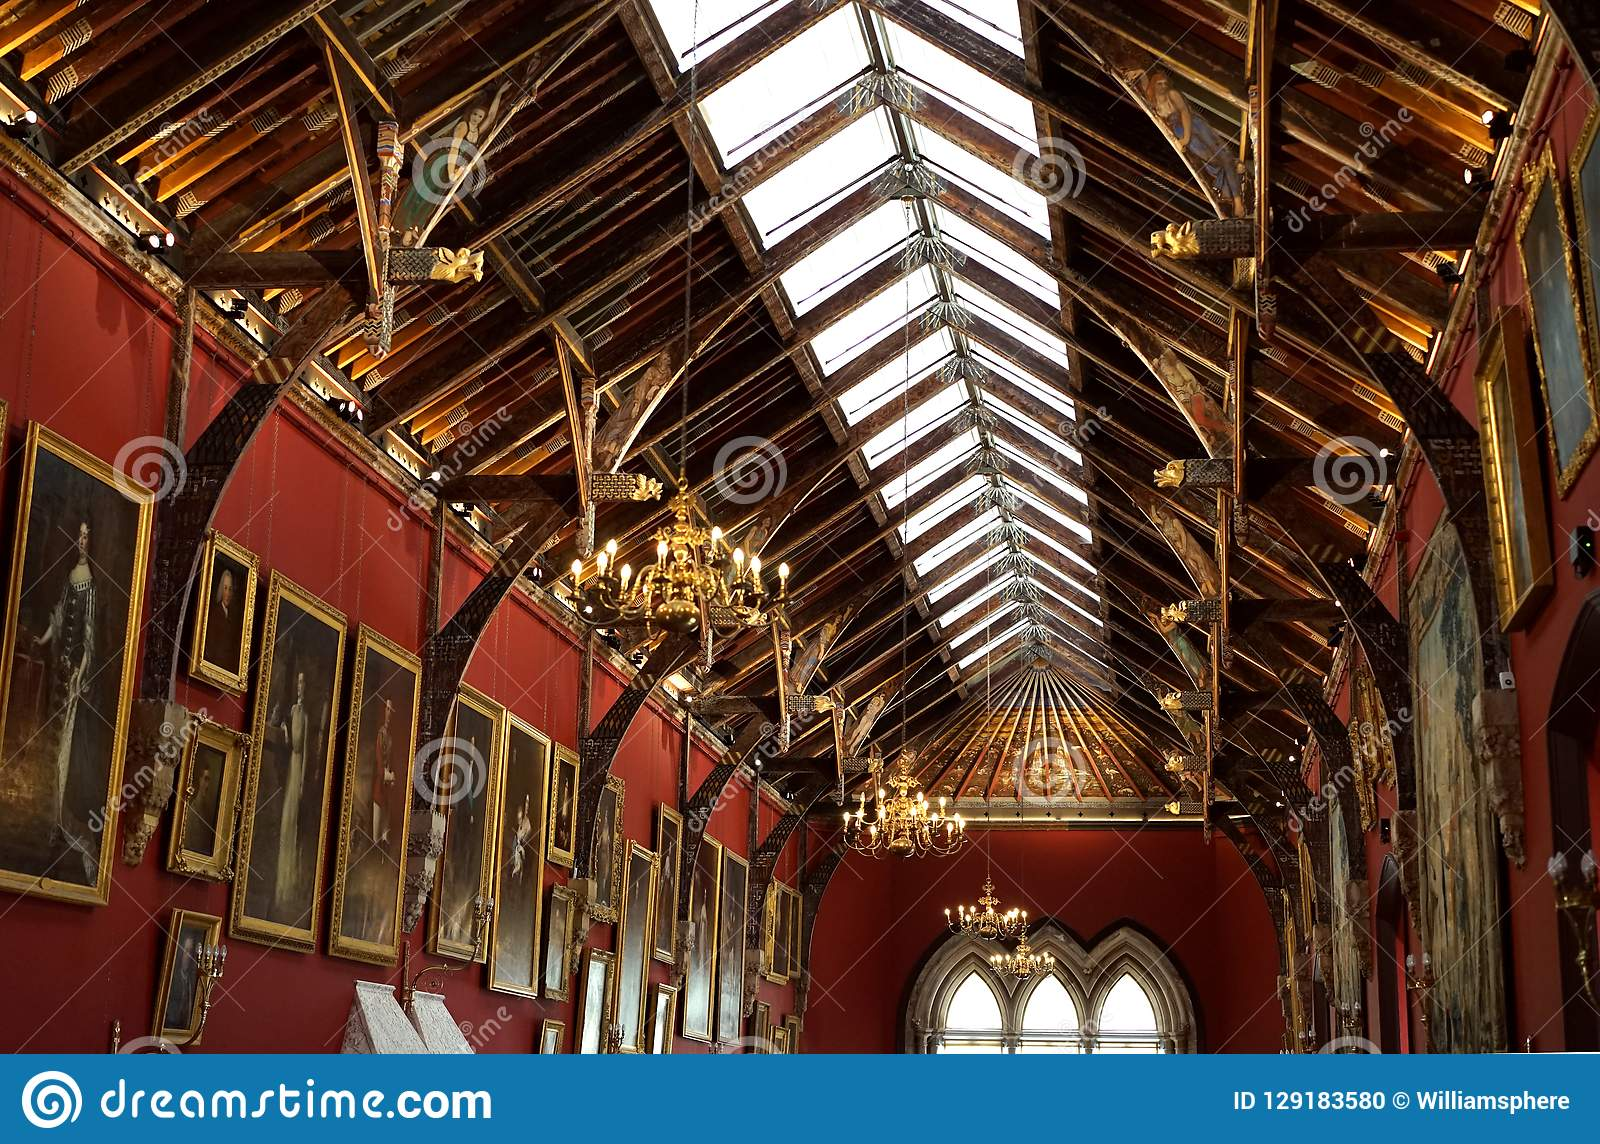 Painted Rafters Photos Free Royalty Free Stock Photos From Dreamstime